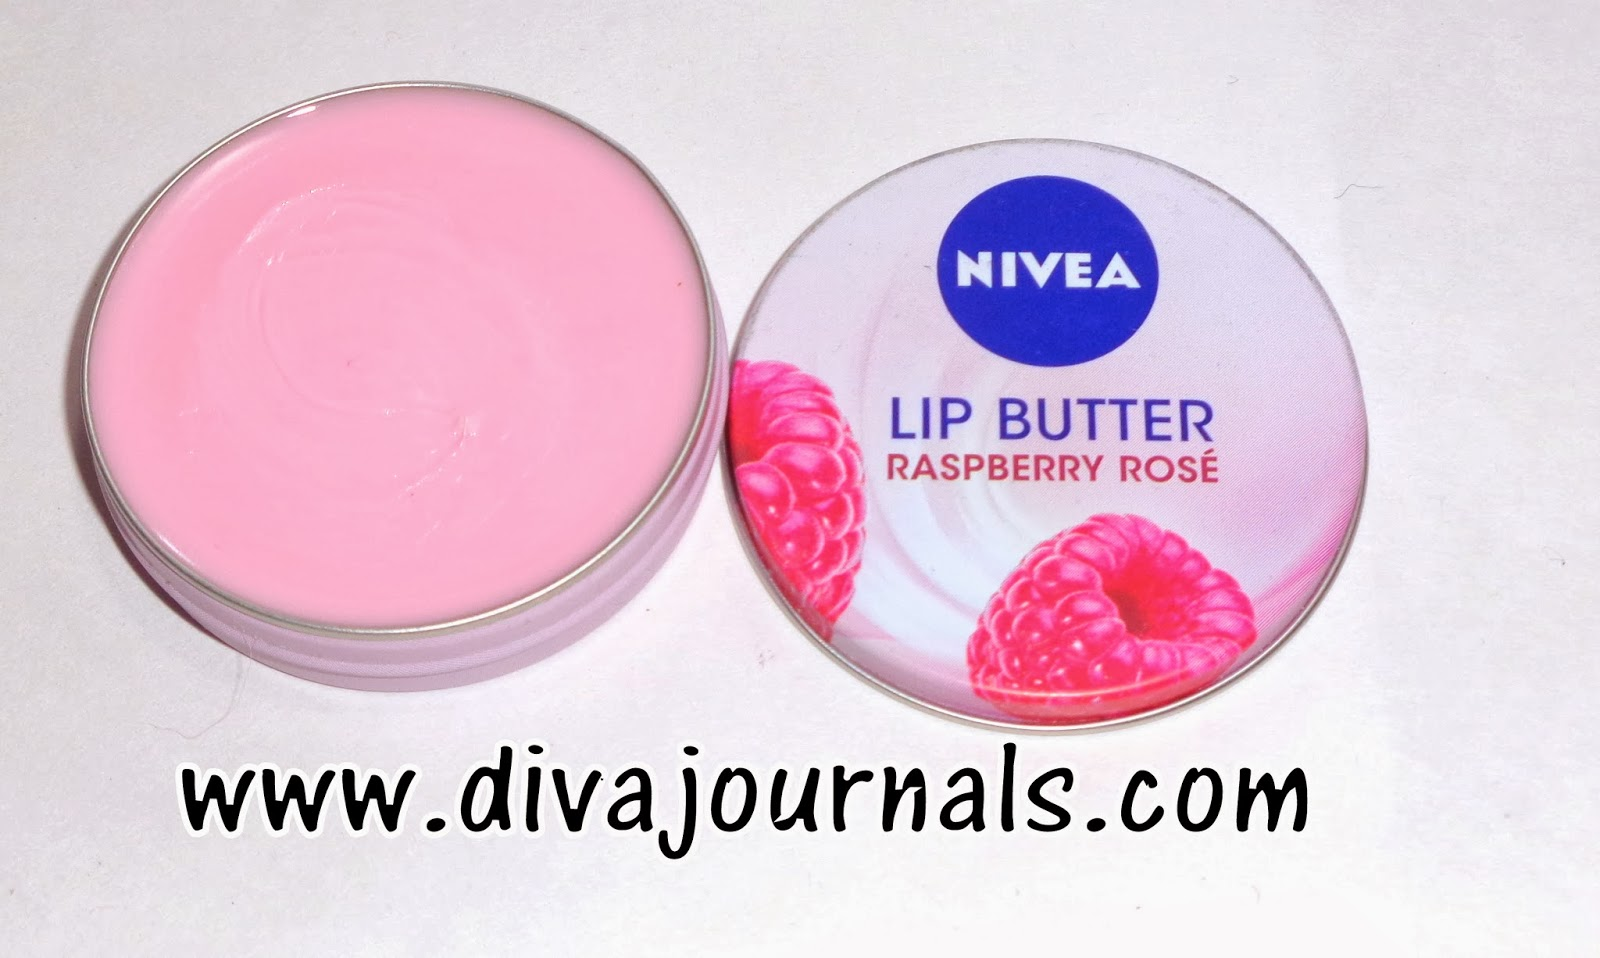 Nivea Lip Butter Raspberry Rose